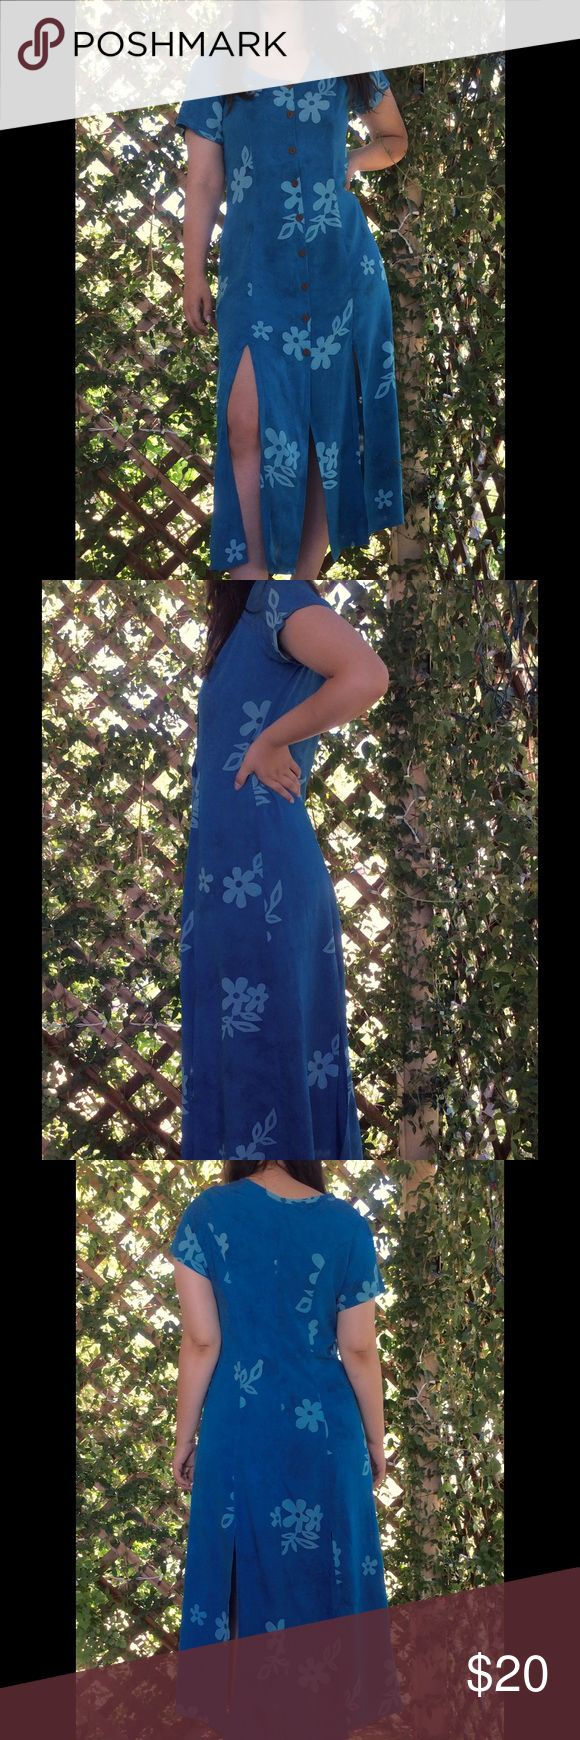 """90s Hawaiian Print Midi Dress w/Slit Hem Vintage 90s Hawaiian print dress, midi length with flirty slits around the bottom of skirt, full button-up front with scoop neck and short sleeves in a lovely deep Turquoise Blue, princess seam shape is figure flattering. Size Medium: shoulder-shoulder 14"""", armpits 18"""", waist 16"""" side-side, shoulder-hem 38"""". Perfect for Summer parties! Dresses Midi"""